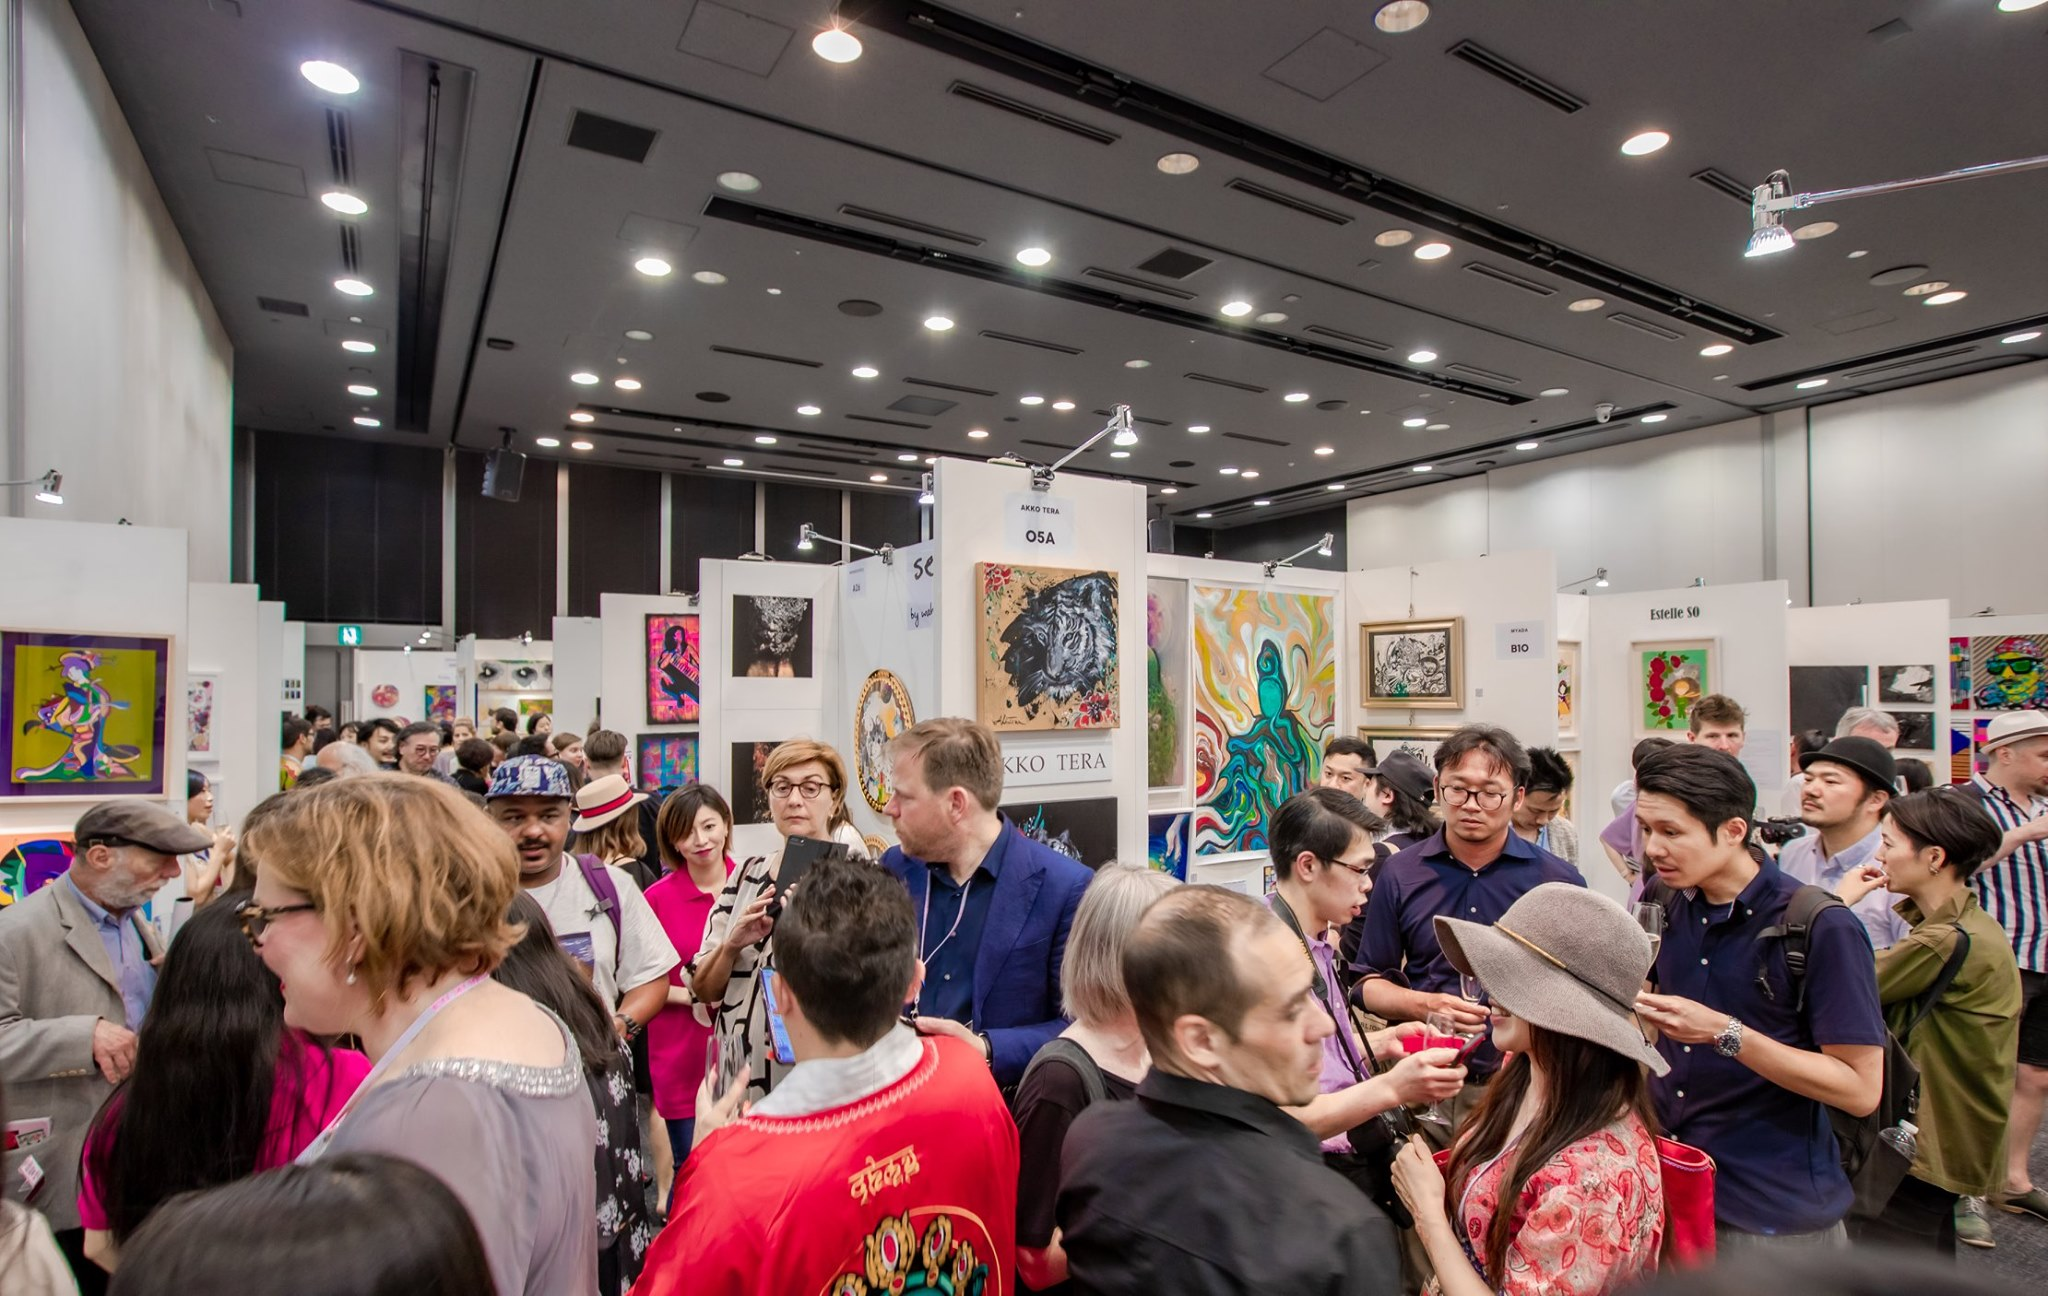 Recent Photo From the Very Bustling Tokyo Art Fair!